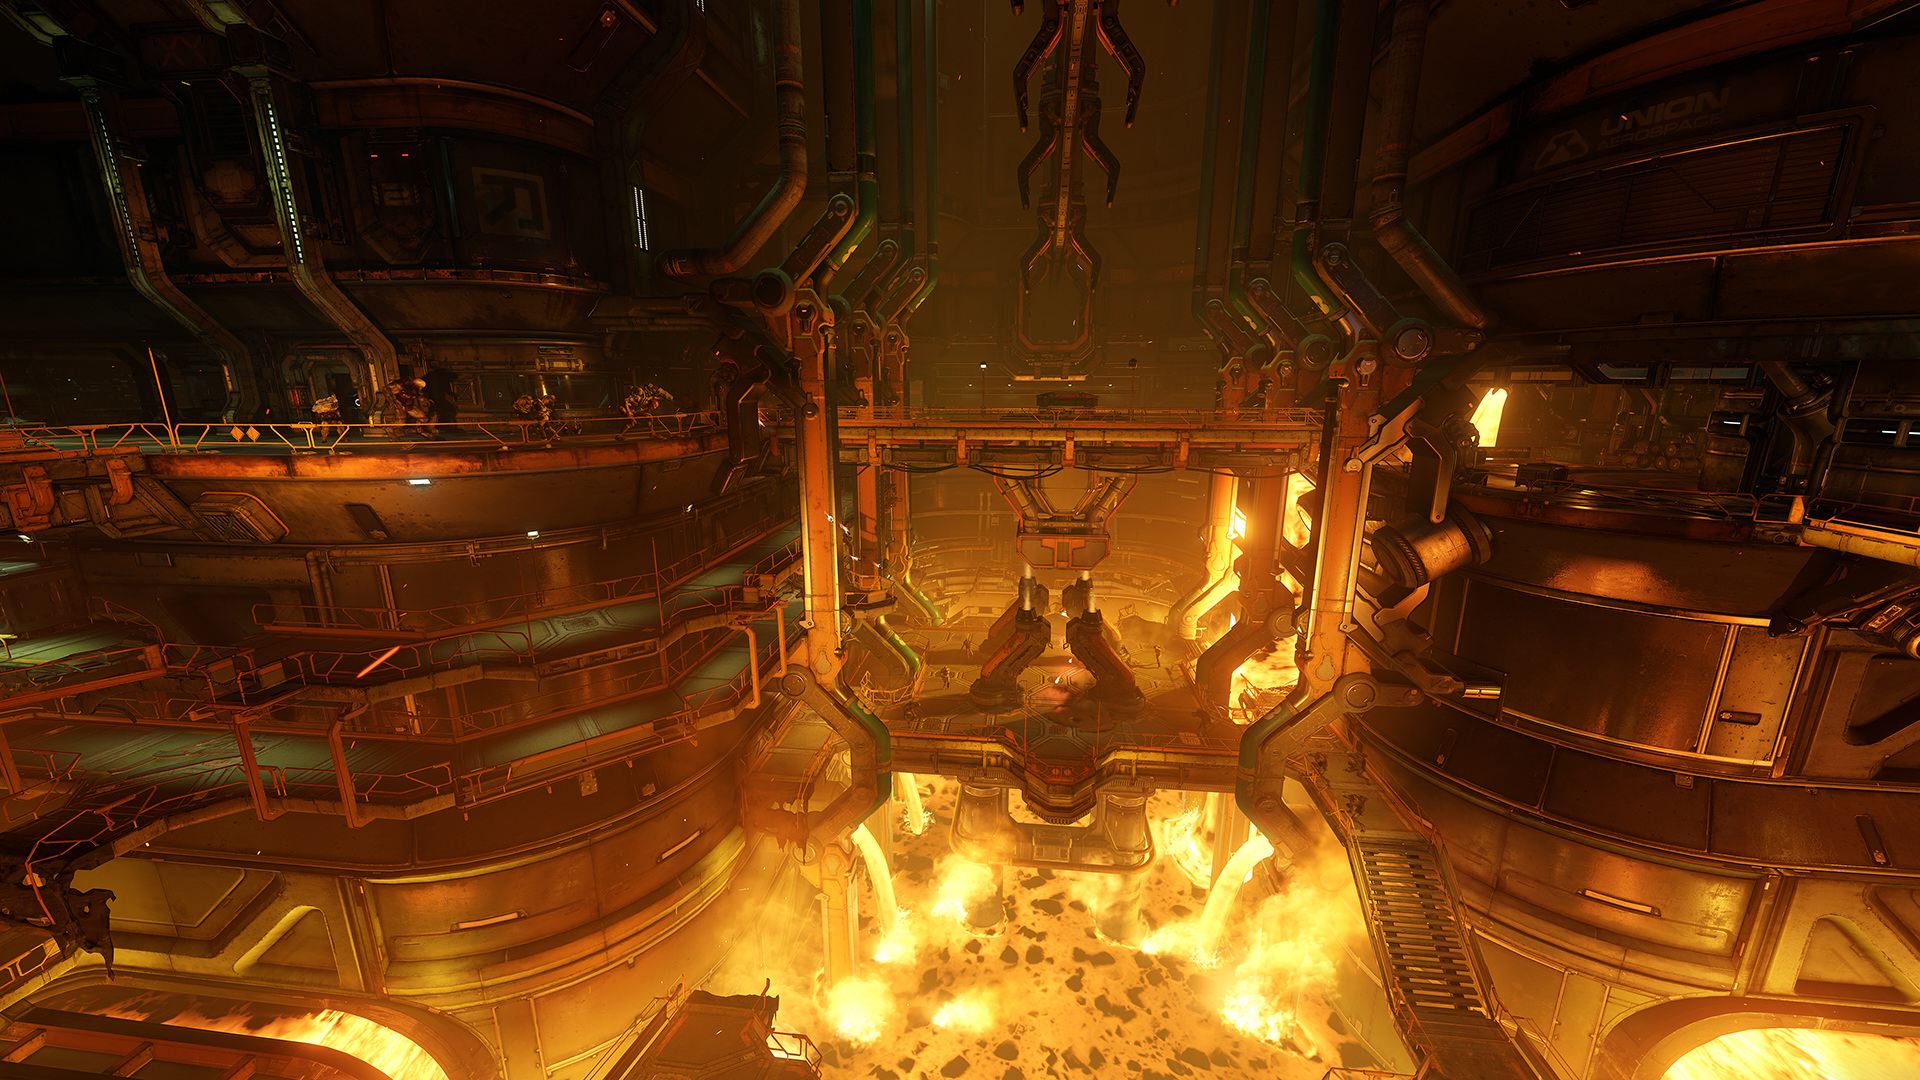 New Screenshots From DOOM - 2015-07-24 12:44:33